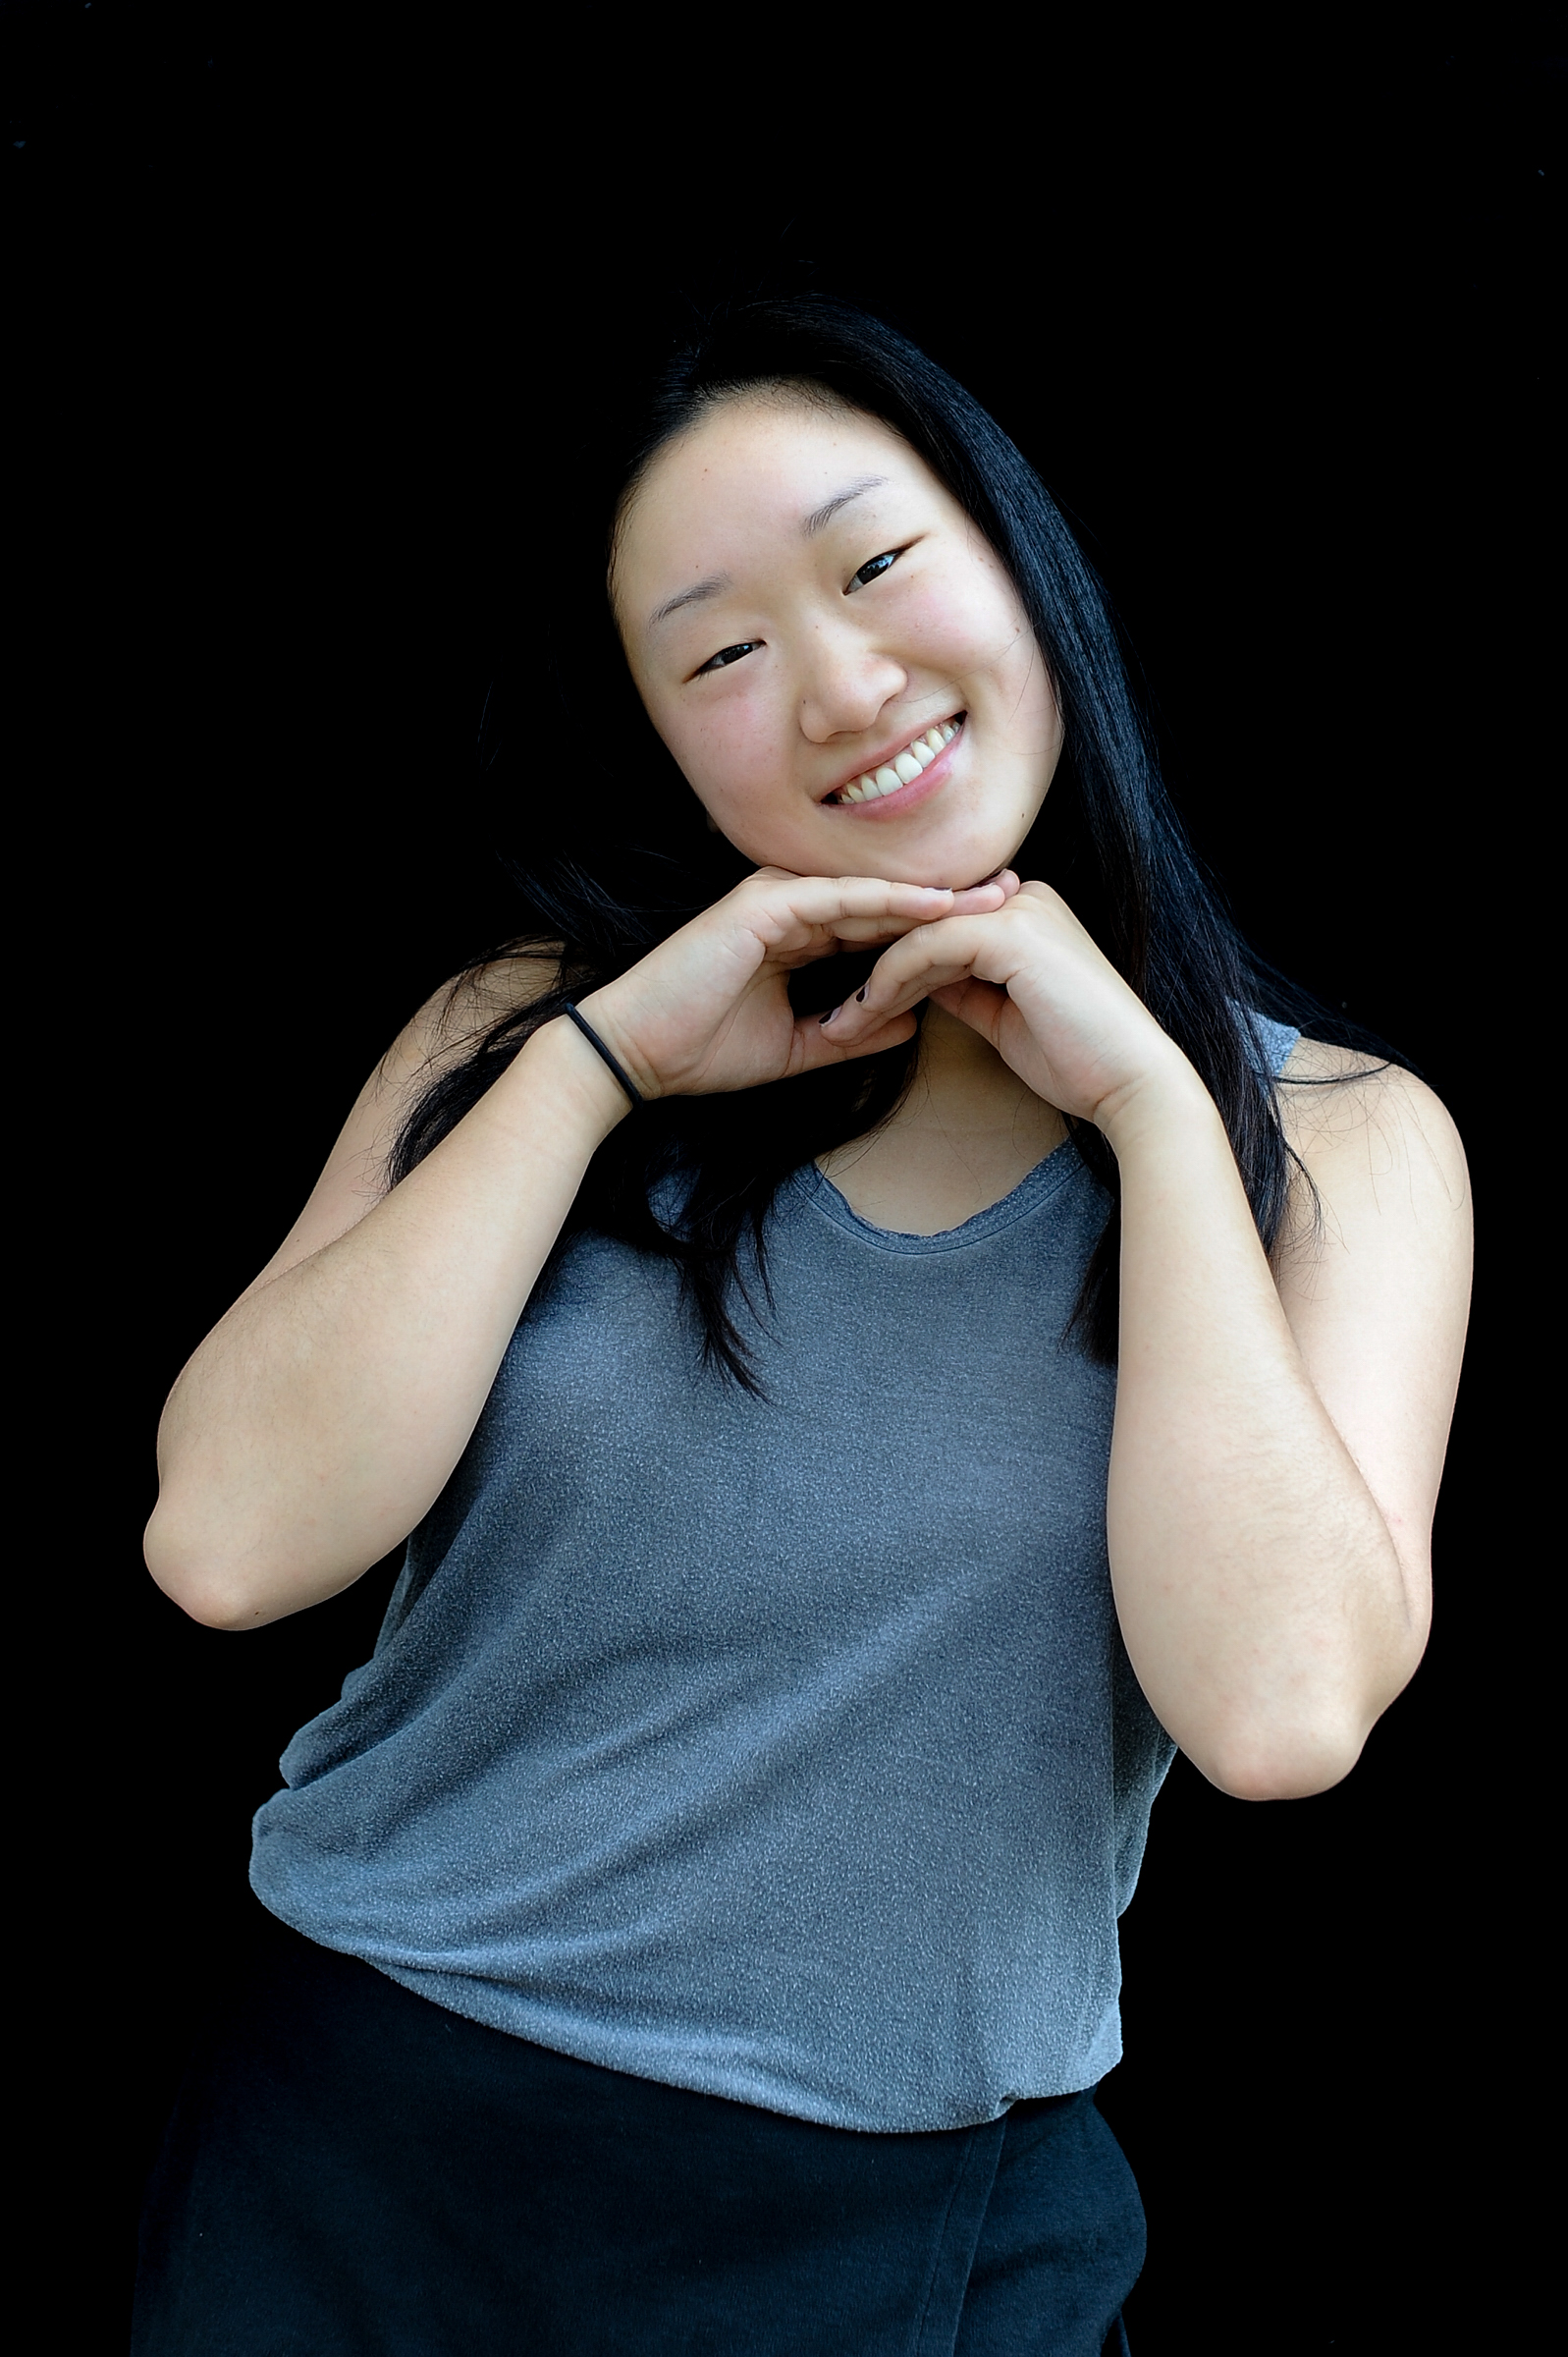 Name: Josephine Chu